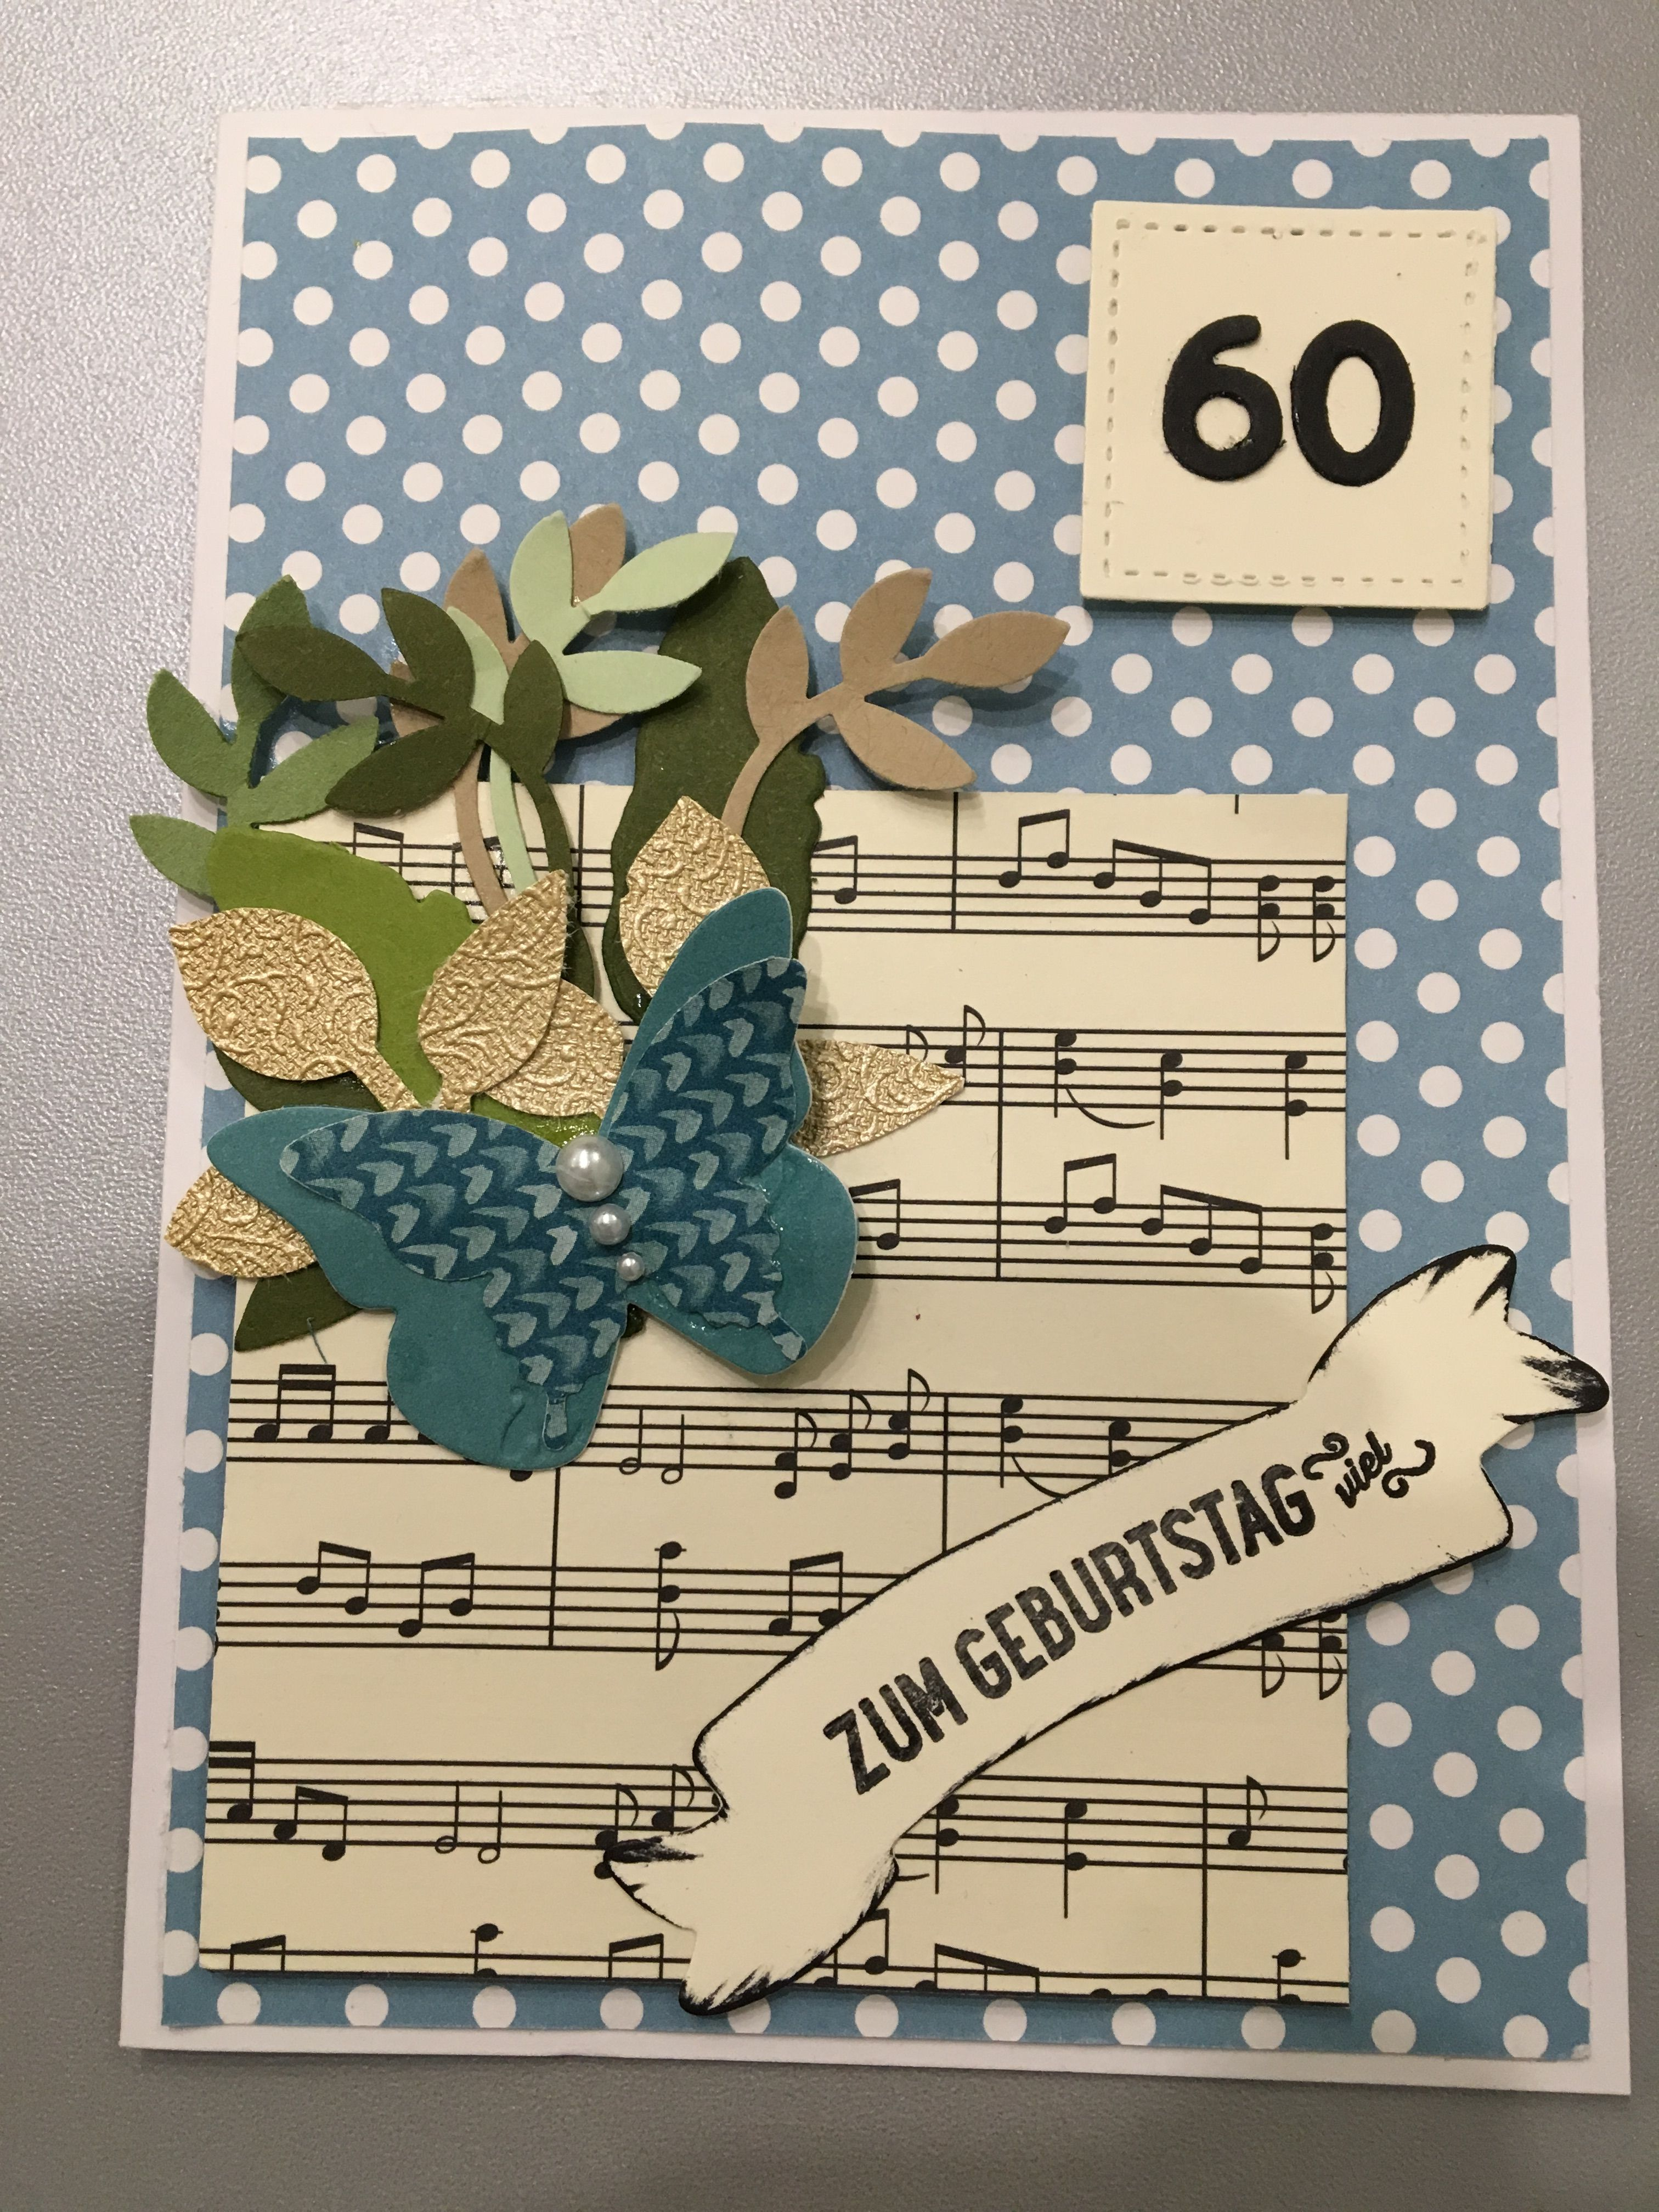 Pin By Colleen Ziemer On Papercrafting Sample Projects Pinterest